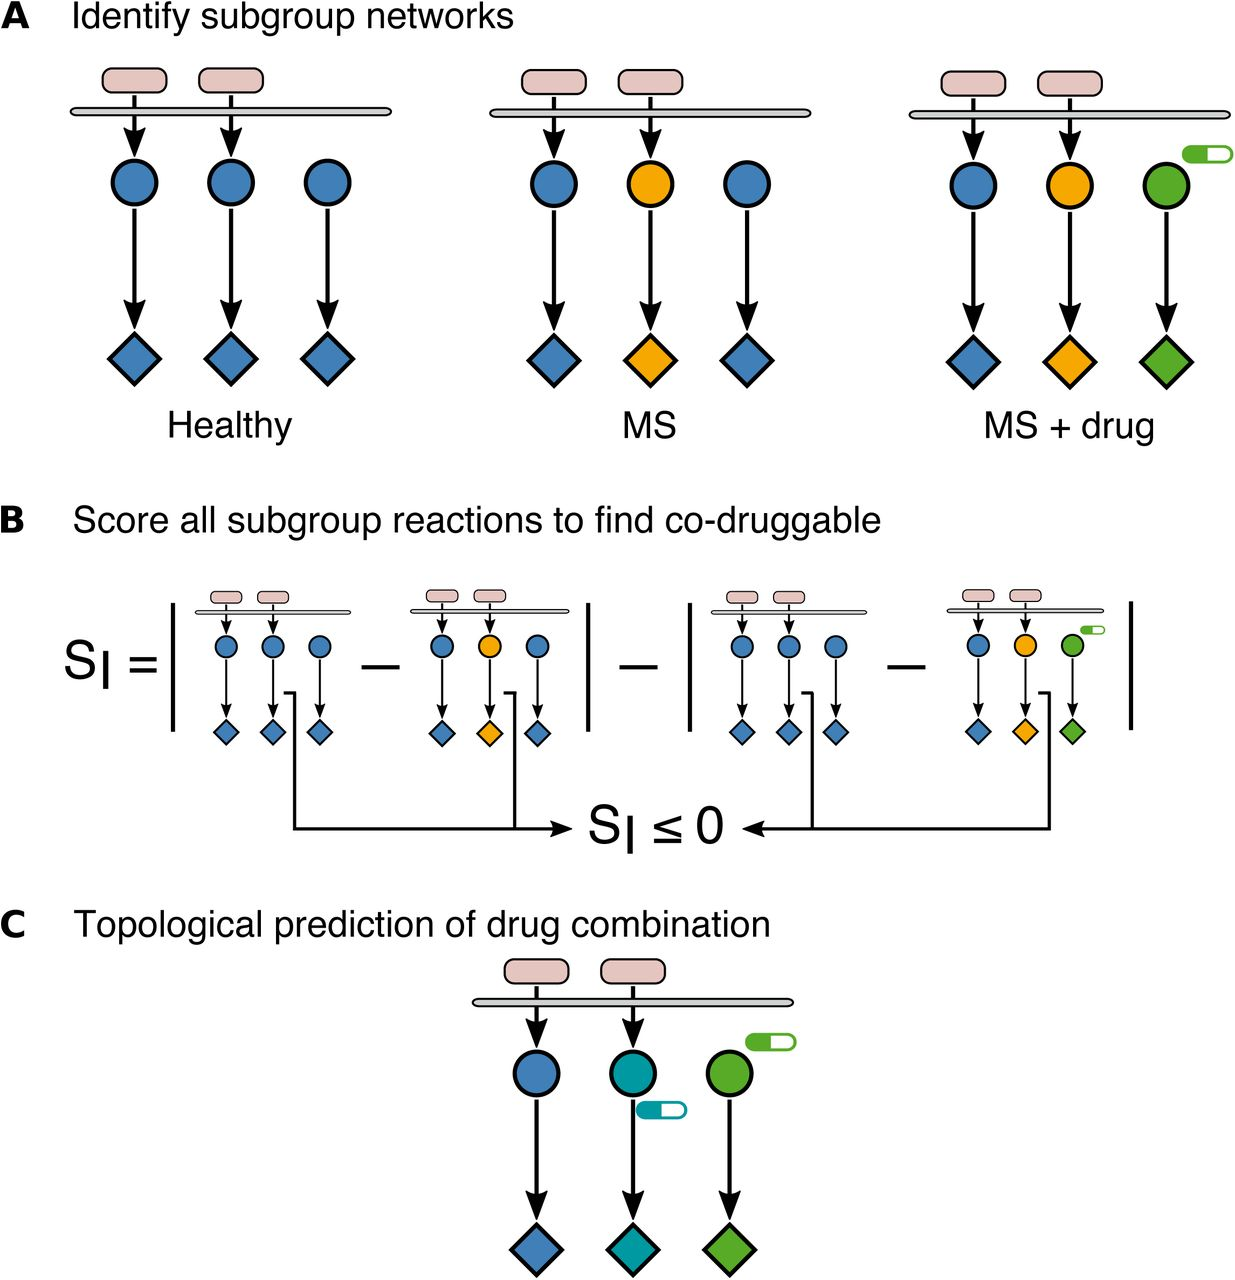 Prediction Of Combination Therapies Based On Topological Modeling Of The Immune Signaling Network In Multiple Sclerosis Biorxiv